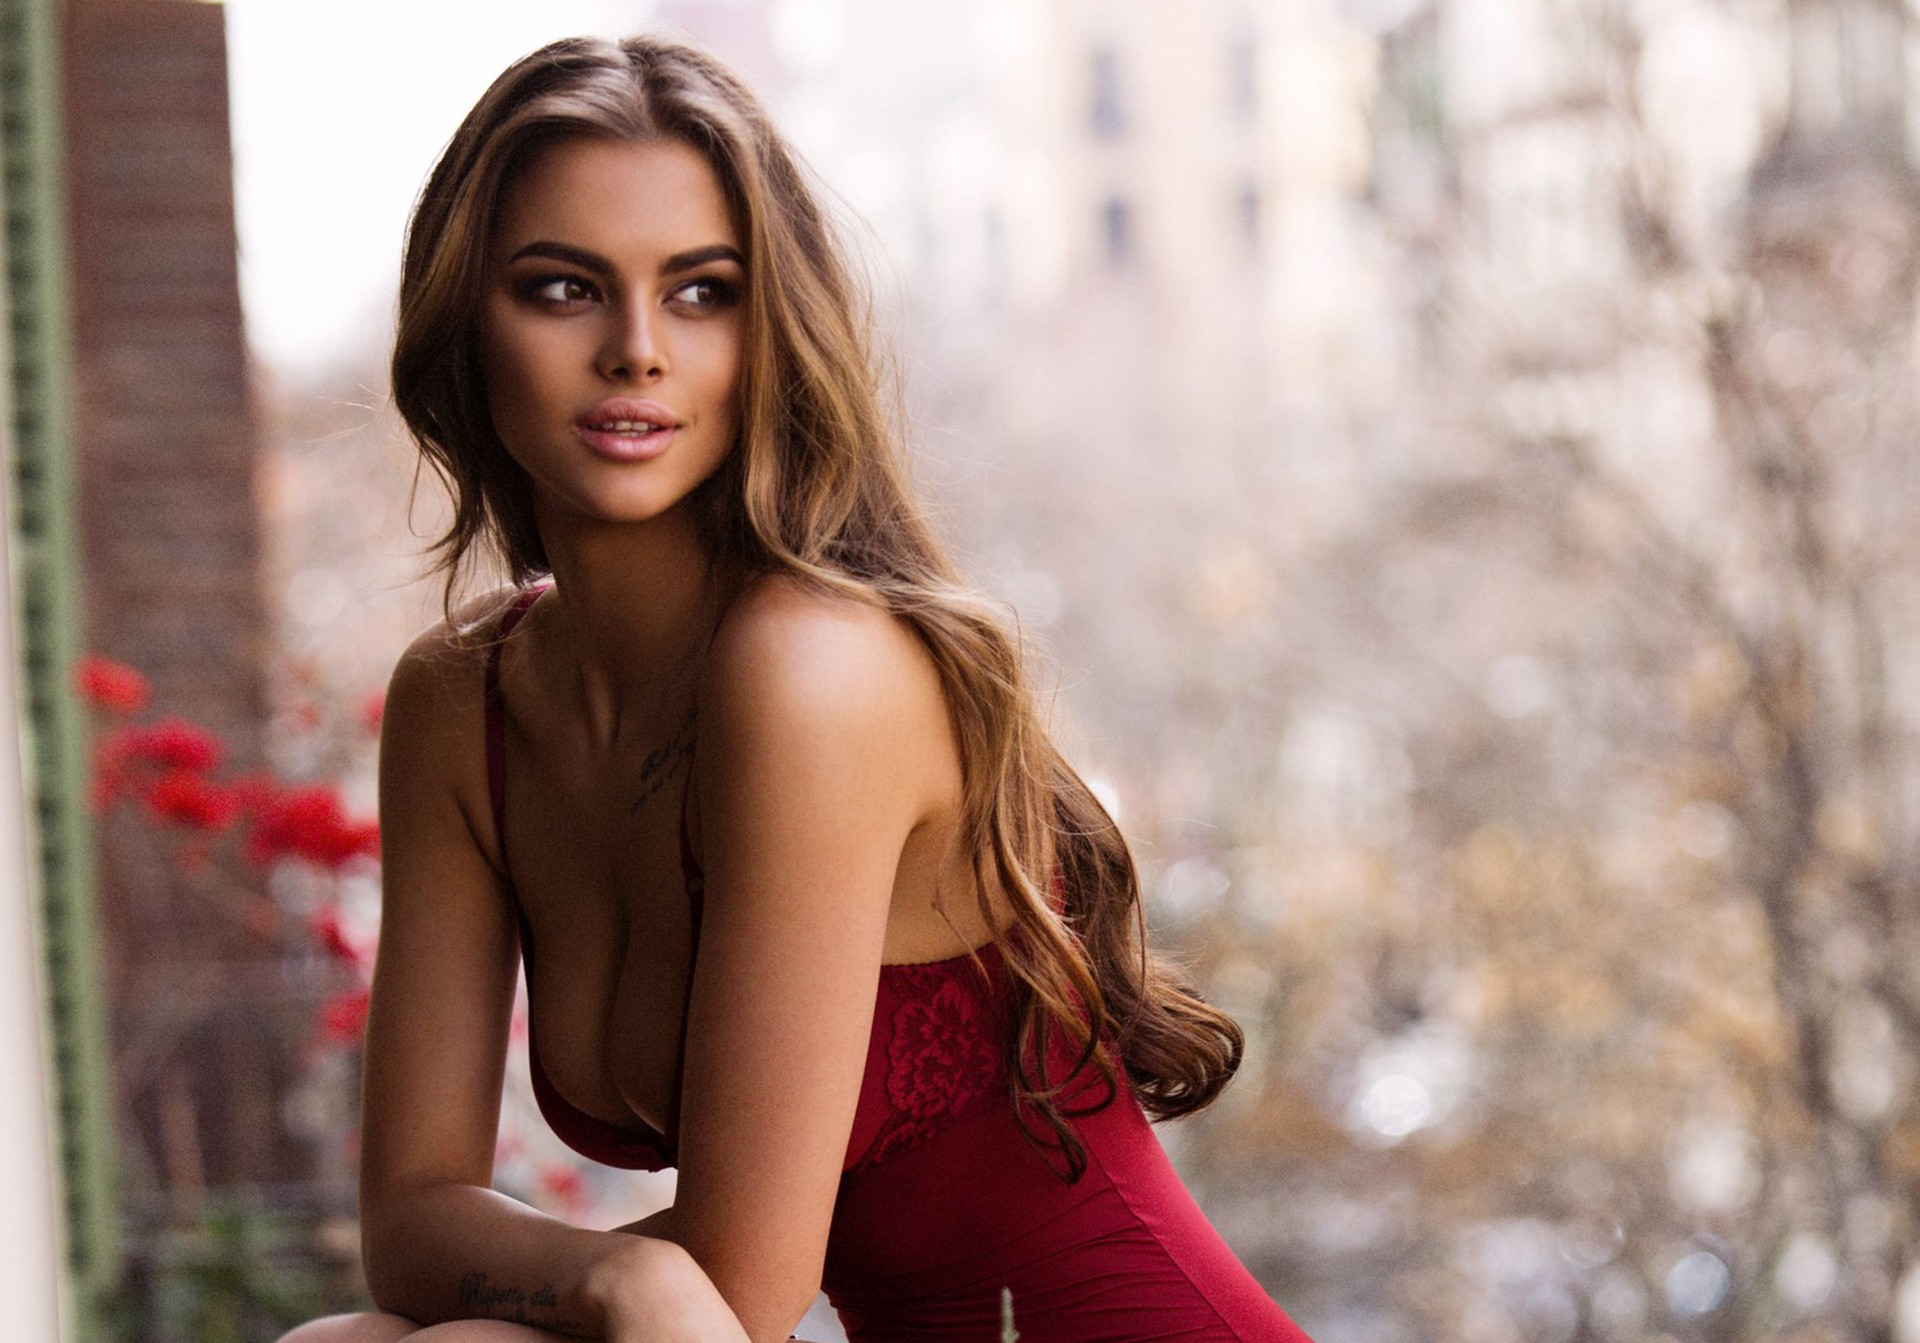 Russian dating sites with chat